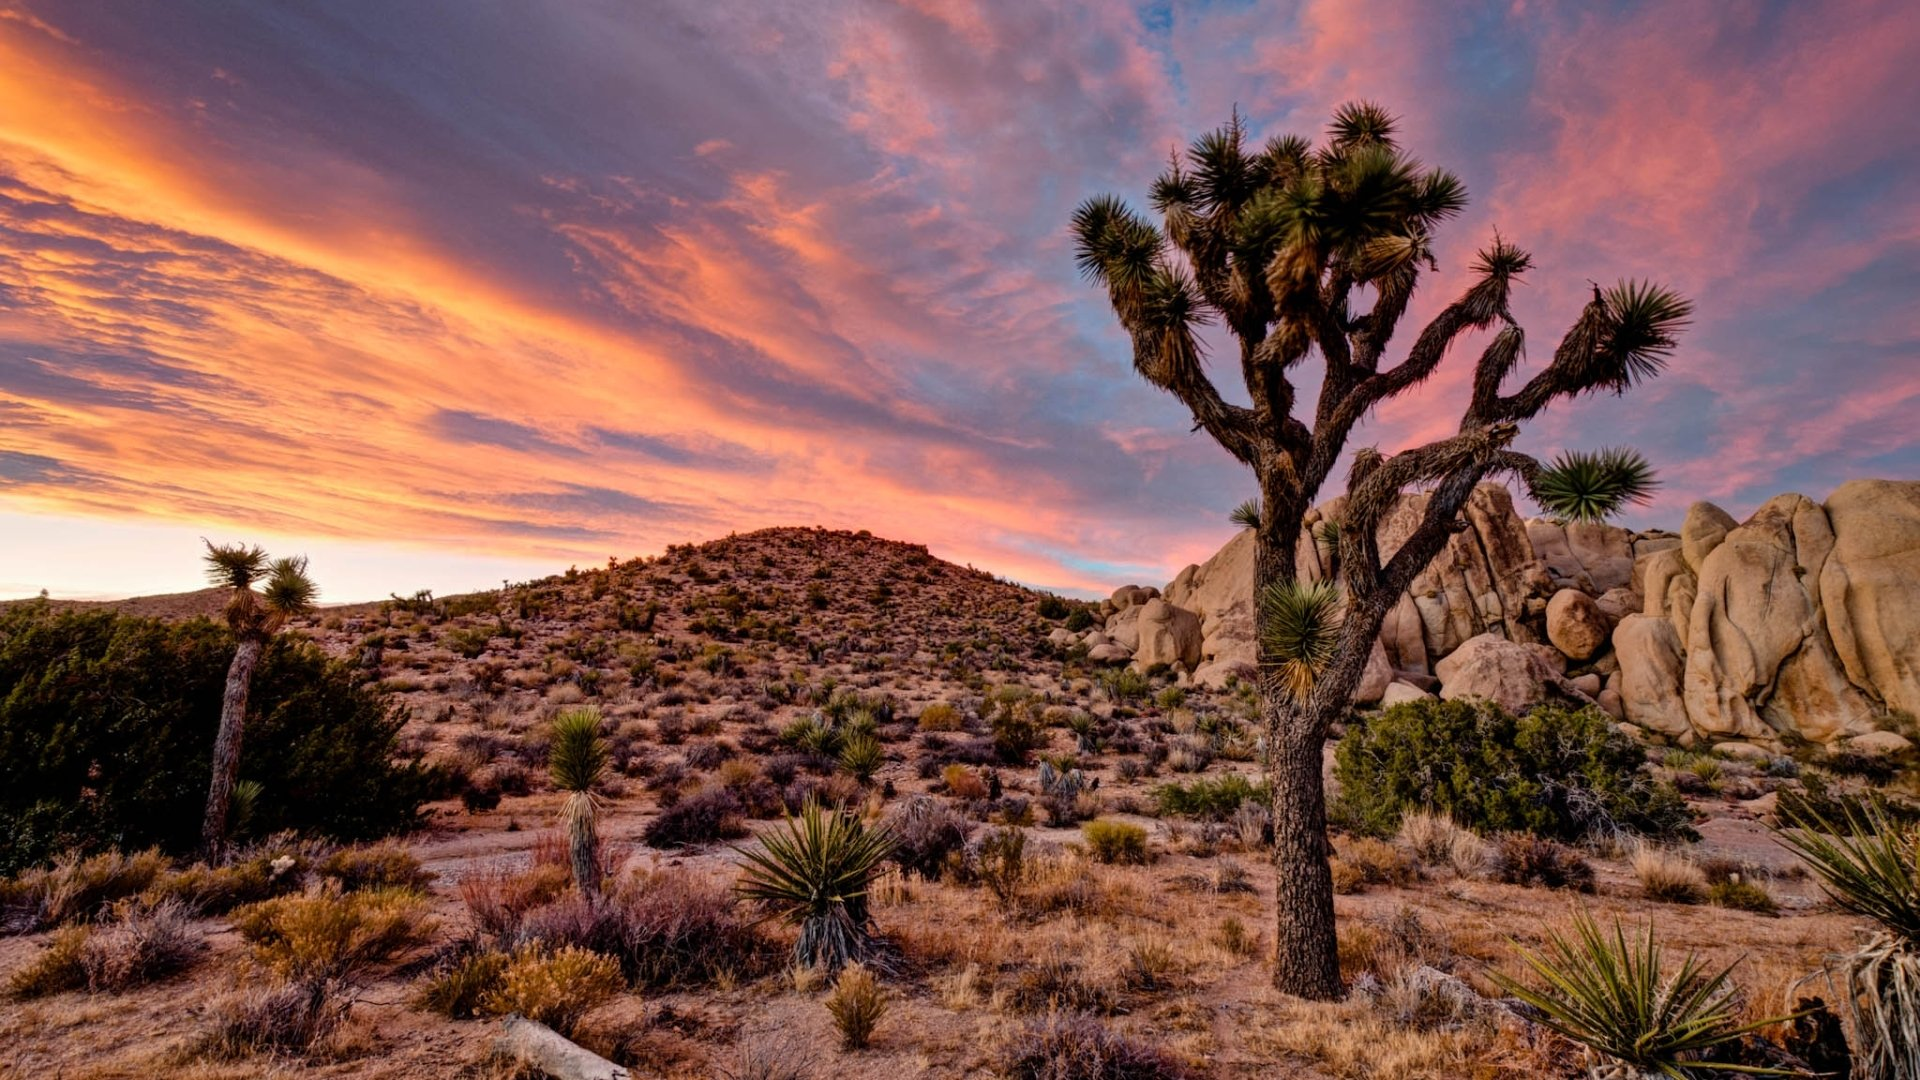 89 Joshua Tree National Park Hd Wallpapers Background Images Wallpaper Abyss Page 3